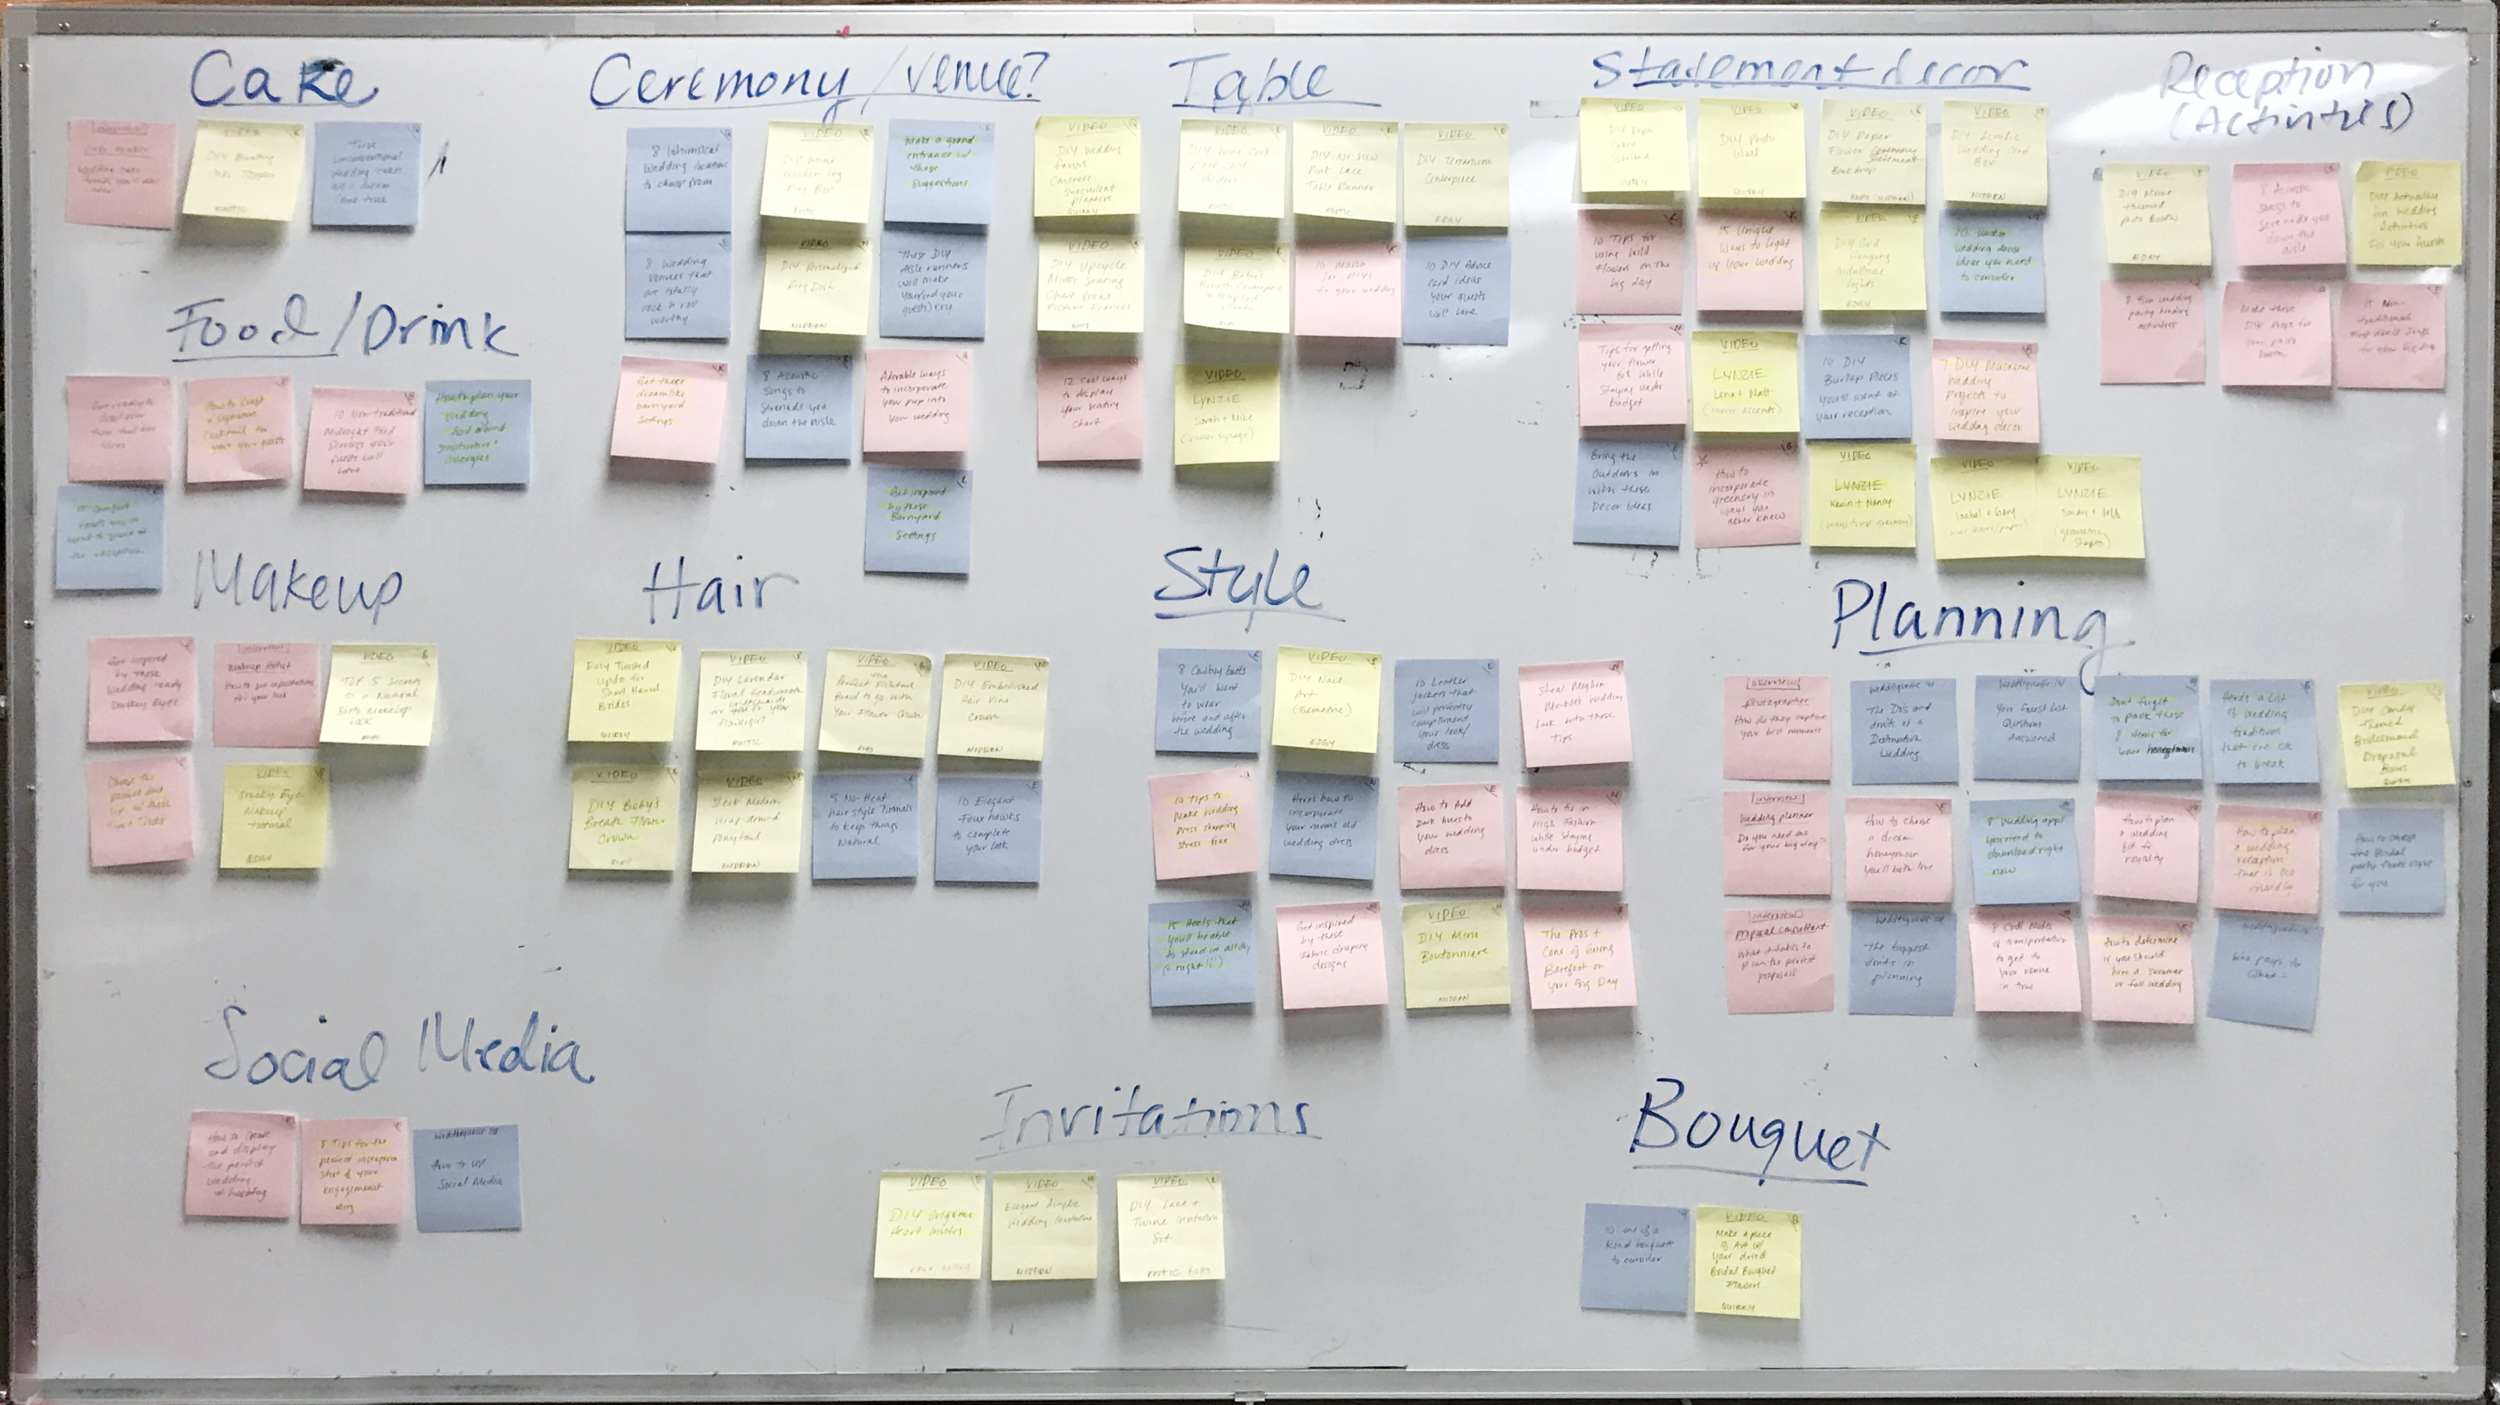 """Initial topics proved too narrow to plan content around. Ceremony and reception became the """"Main Event"""" with some articles placed under a new """"Decor"""" topic.In addition to sorting by topic, articles were color coded so we could see at a glance the breadth of various article types. (Text articles - pink, videos - yellow, and galleries - blue )"""